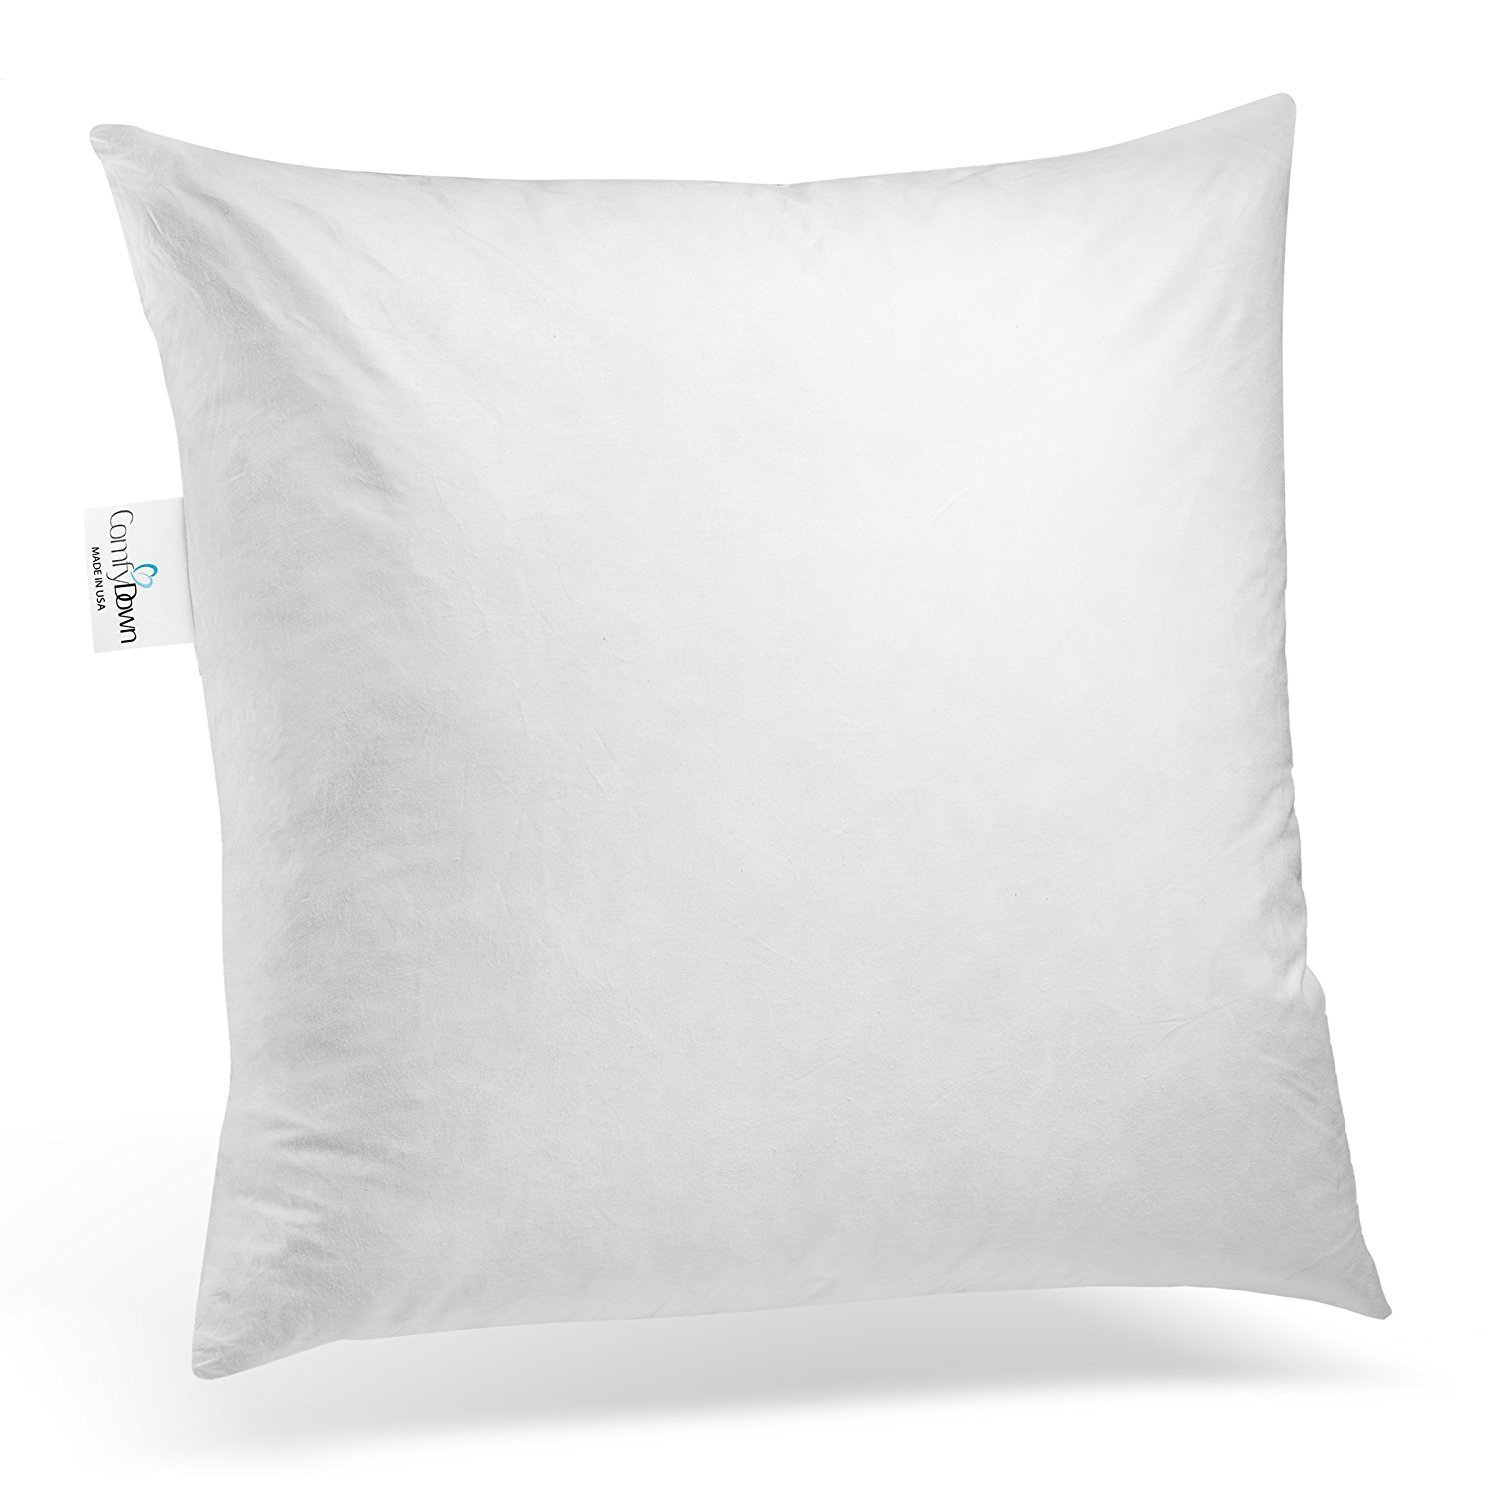 Inexpensive Throw Pillow Inserts : Sofa Pillow Inserts Conceptstructuresllc.com